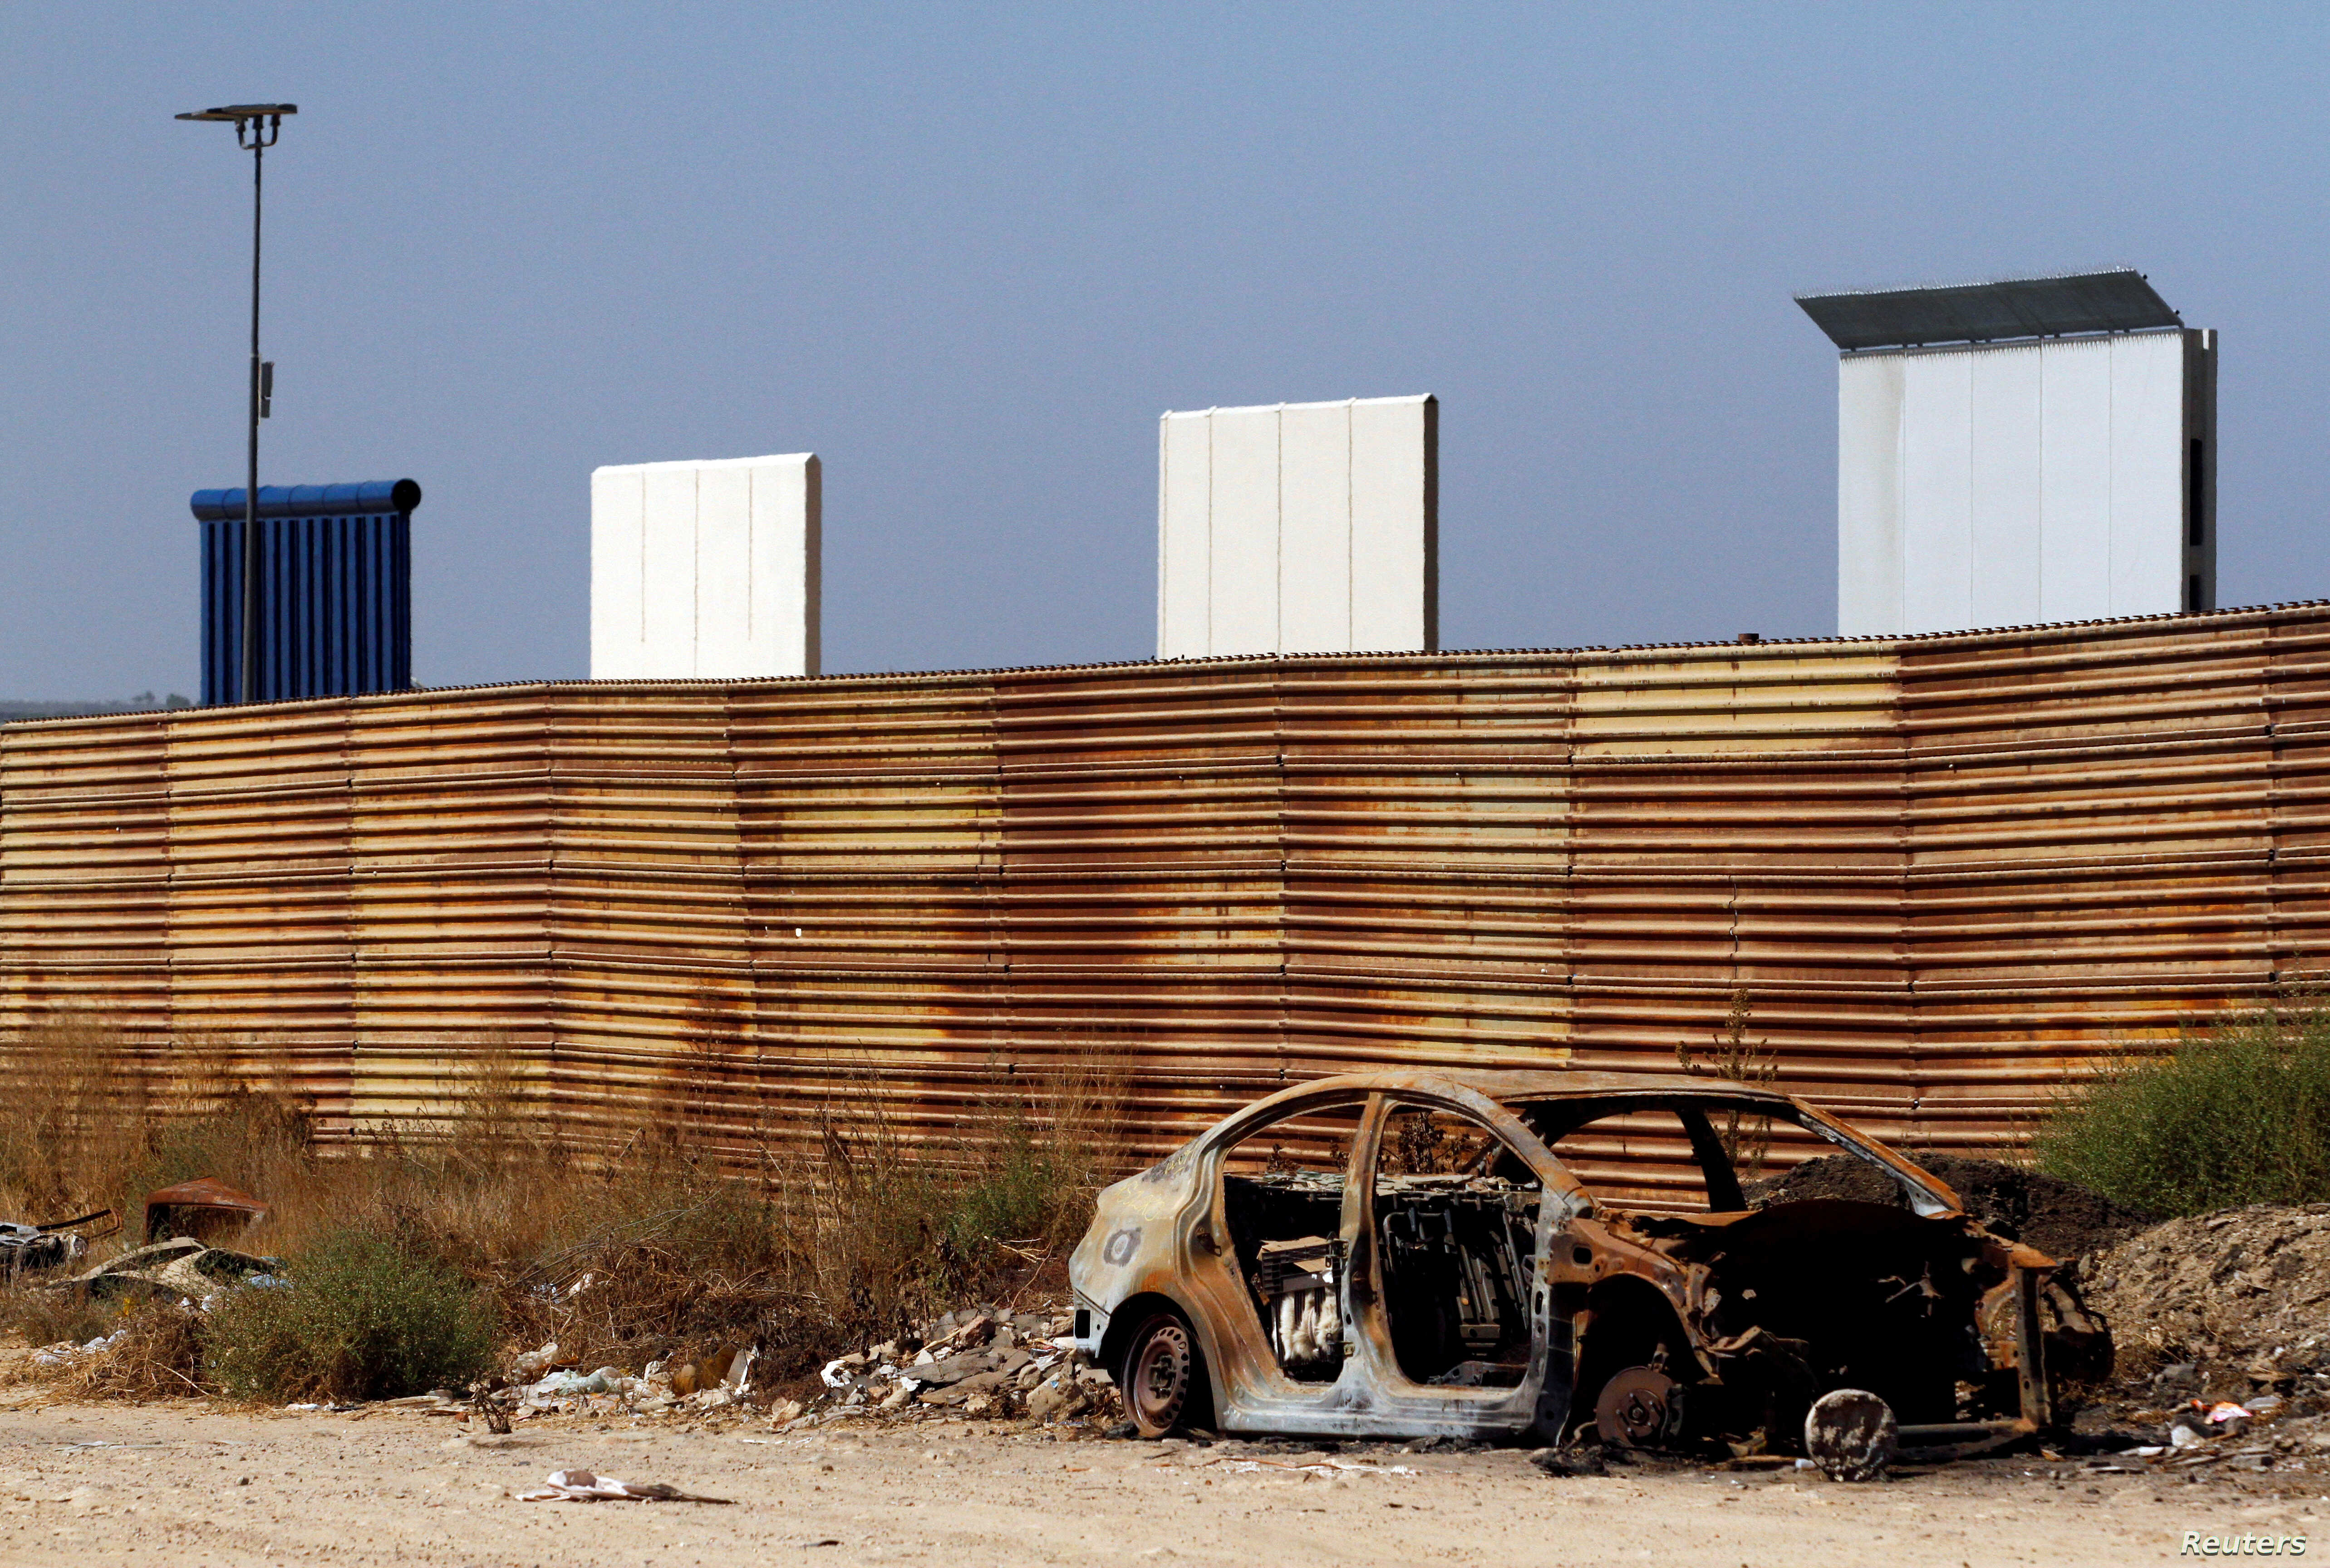 FILE: Prototypes for U.S. President Donald Trump's border wall with Mexico are seen behind the current border fence in this picture taken from the Mexican side of the border in Tijuana, Oct. 12, 2017.